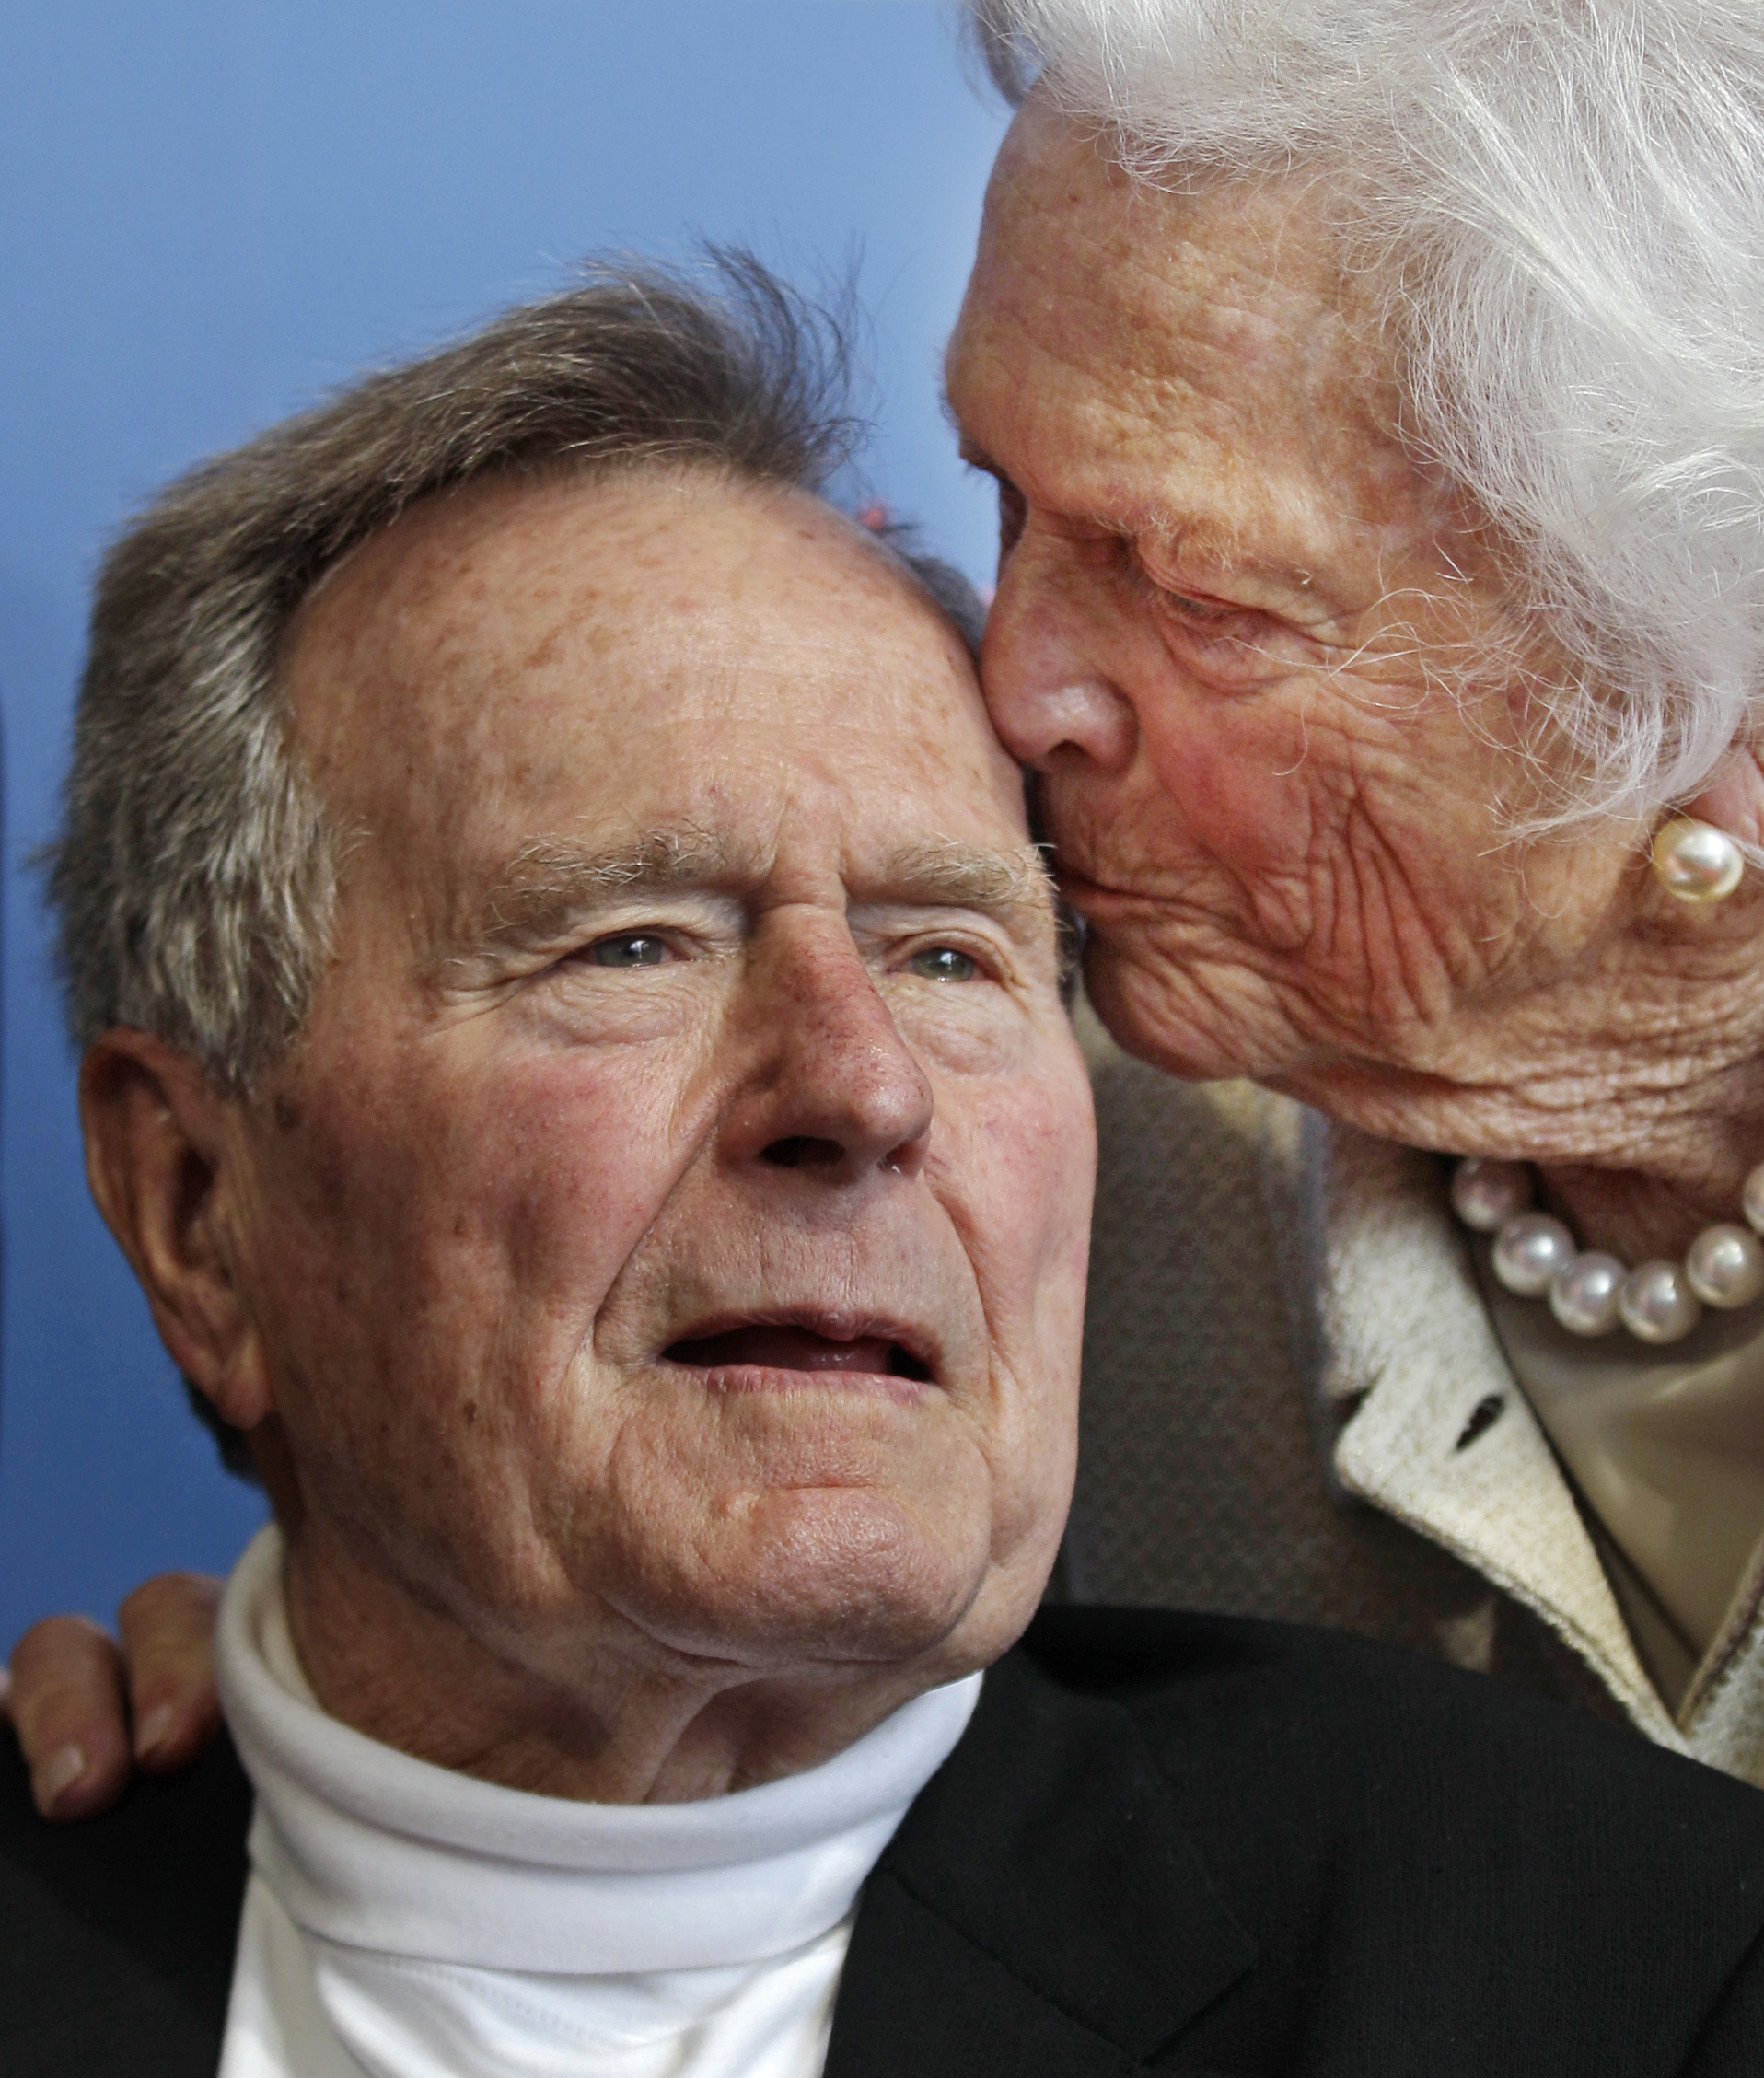 FILE - In this June 12, 2012 file photo, former President George H.W. Bush, and his wife, former first lady Barbara Bush, arrive for the premiere of HBO's new documentary on his life near the family compound in Kennebunkport, Maine. Bush has died at age 94. Family spokesman Jim McGrath says Bush died shortly after 10 p.m. Friday, Nov. 30, 2018, about eight months after the death of his wife, Barbara Bush. (AP Photo/Charles Krupa, File)